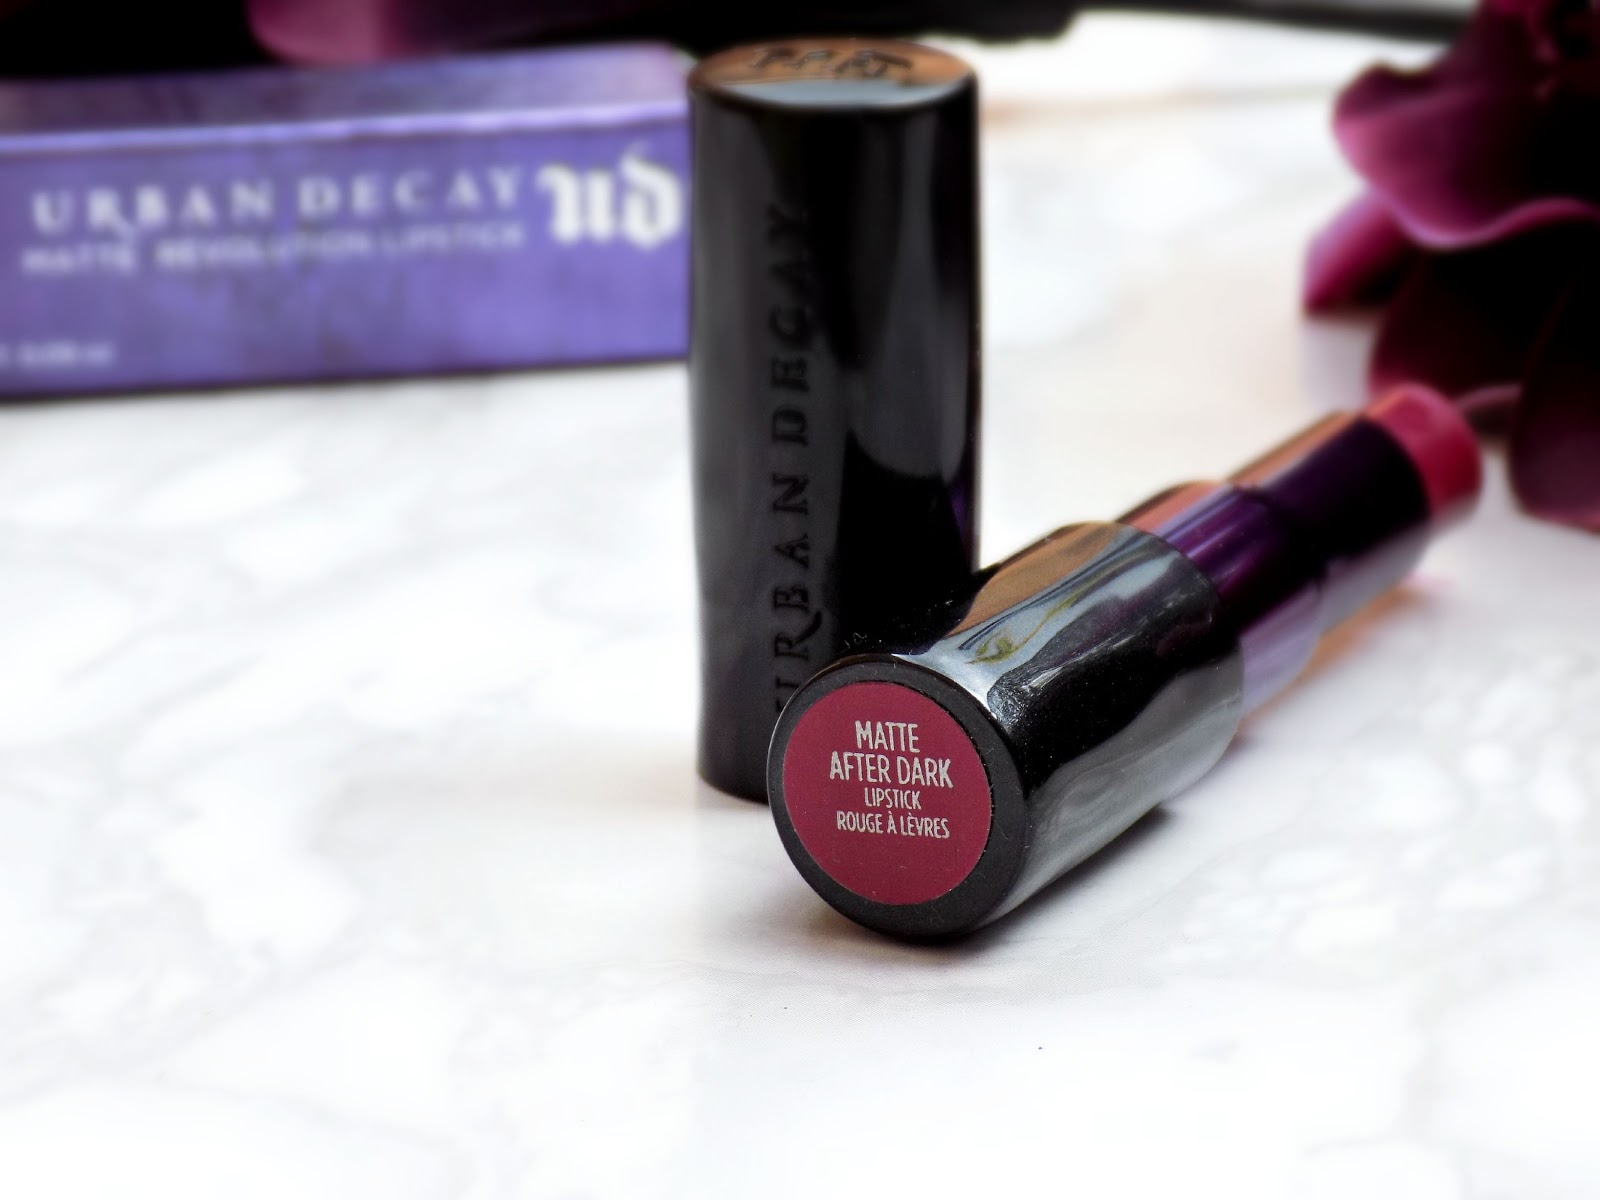 Urban Decay Matte Revolution Lipstick 'After Dark'